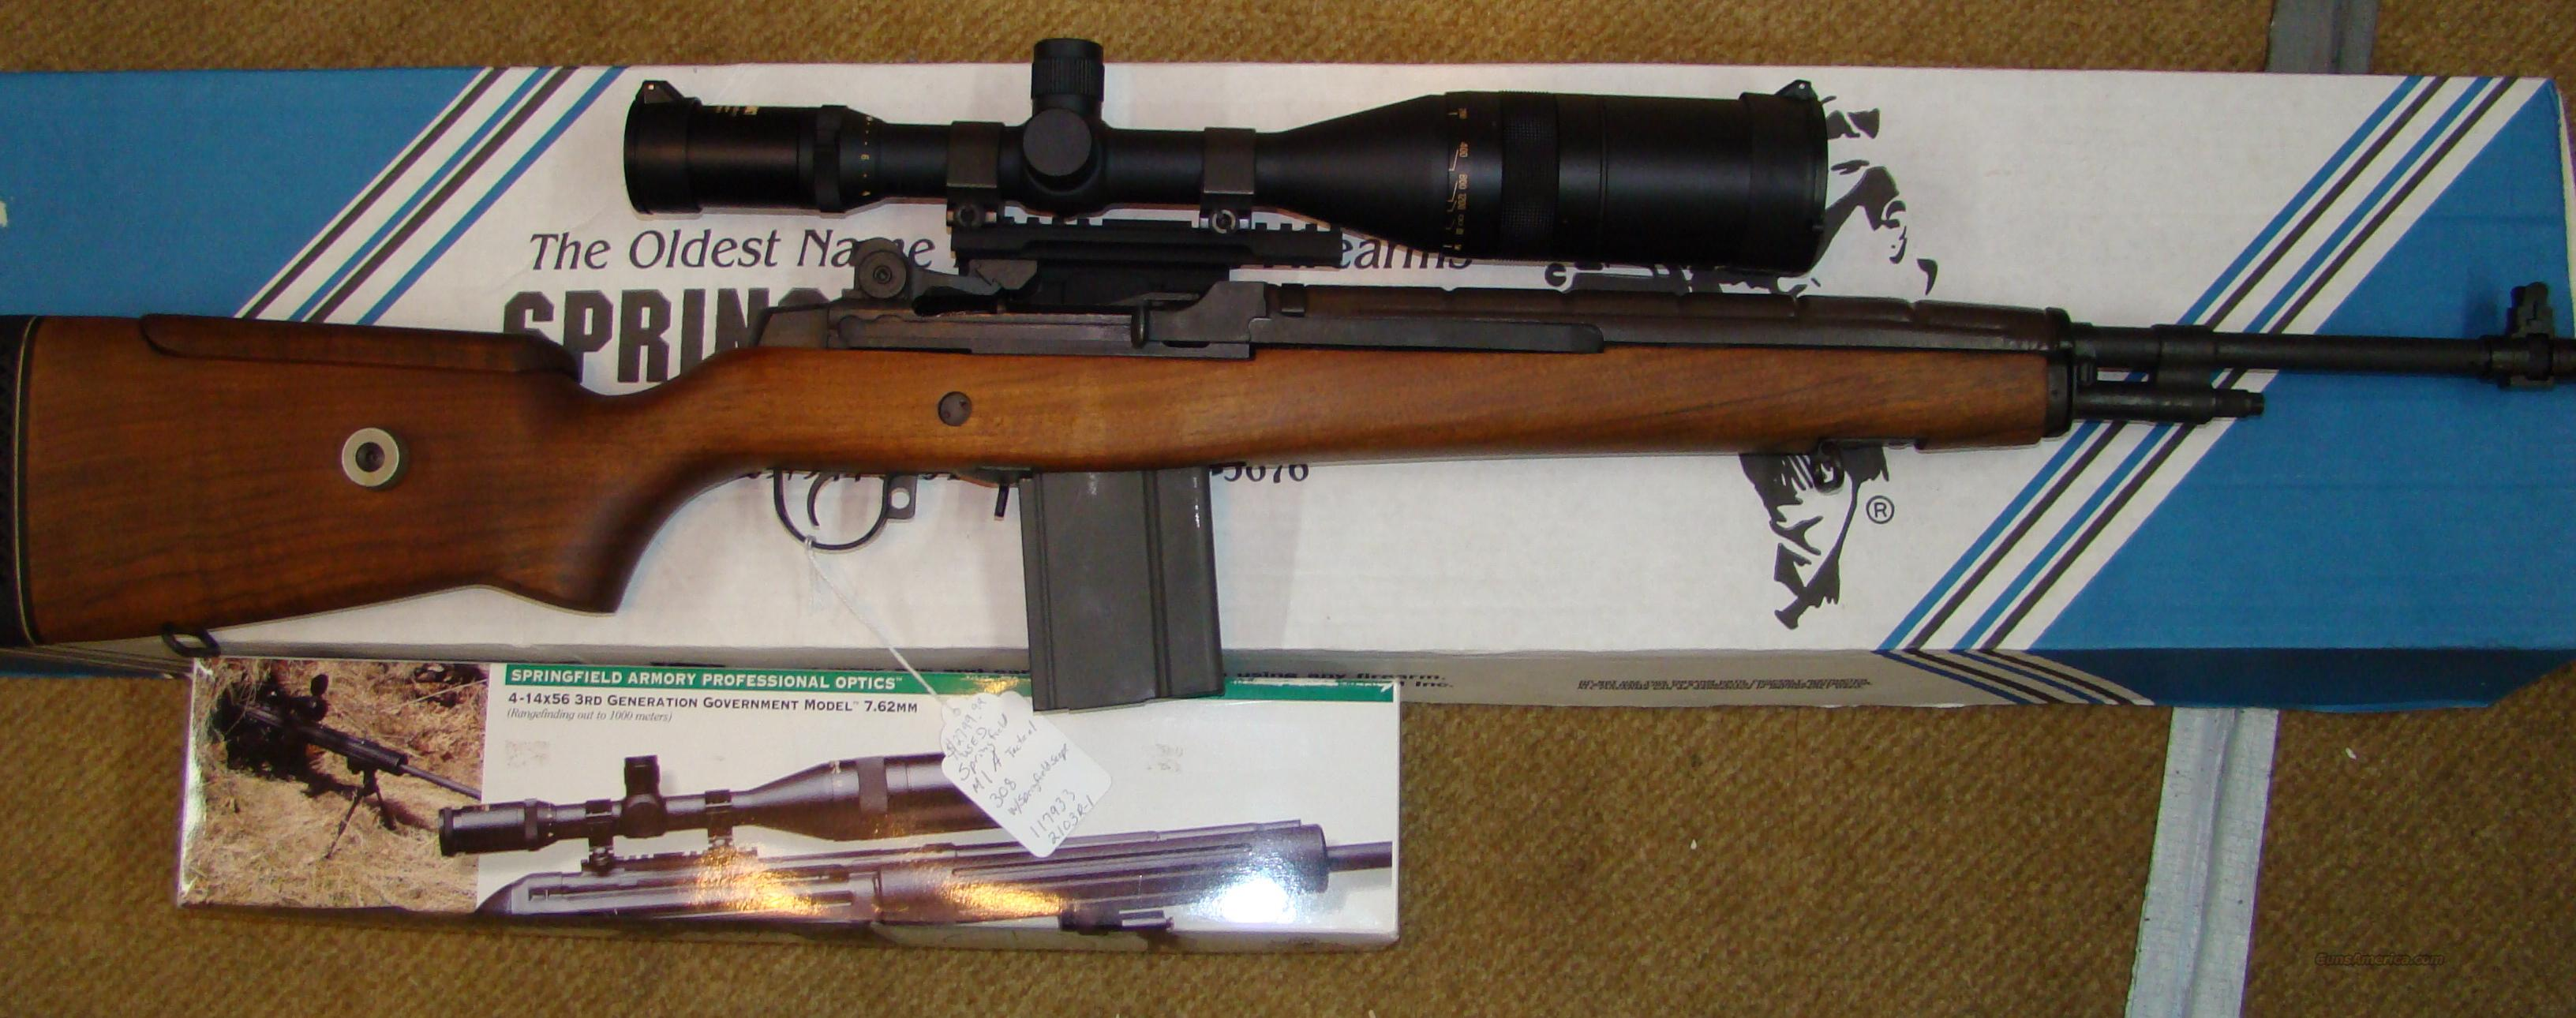 springfield M1A M21 tactical with springfield scope  Guns > Rifles > Springfield Armory Rifles > M1A/M14